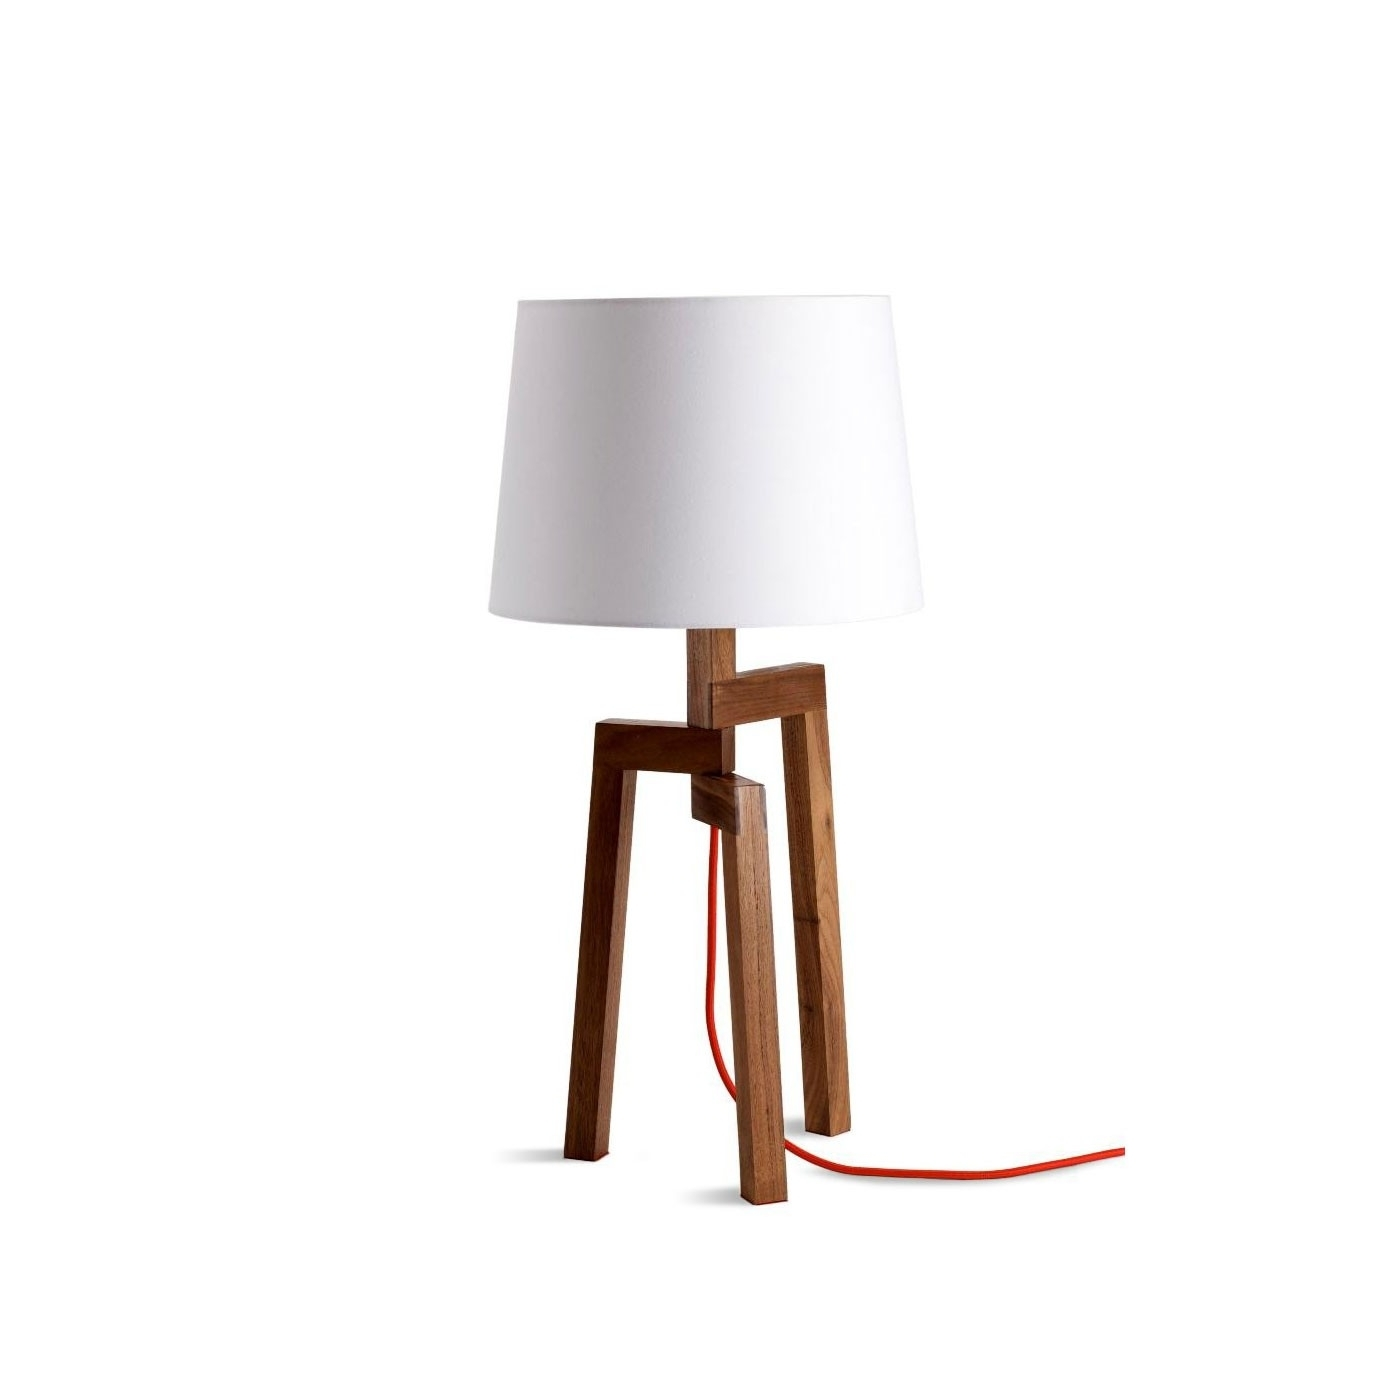 Top 53 Magnificent Cordless Table Lamps Rechargeable For Bedroom Within Current Battery Operated Living Room Table Lamps (View 16 of 20)